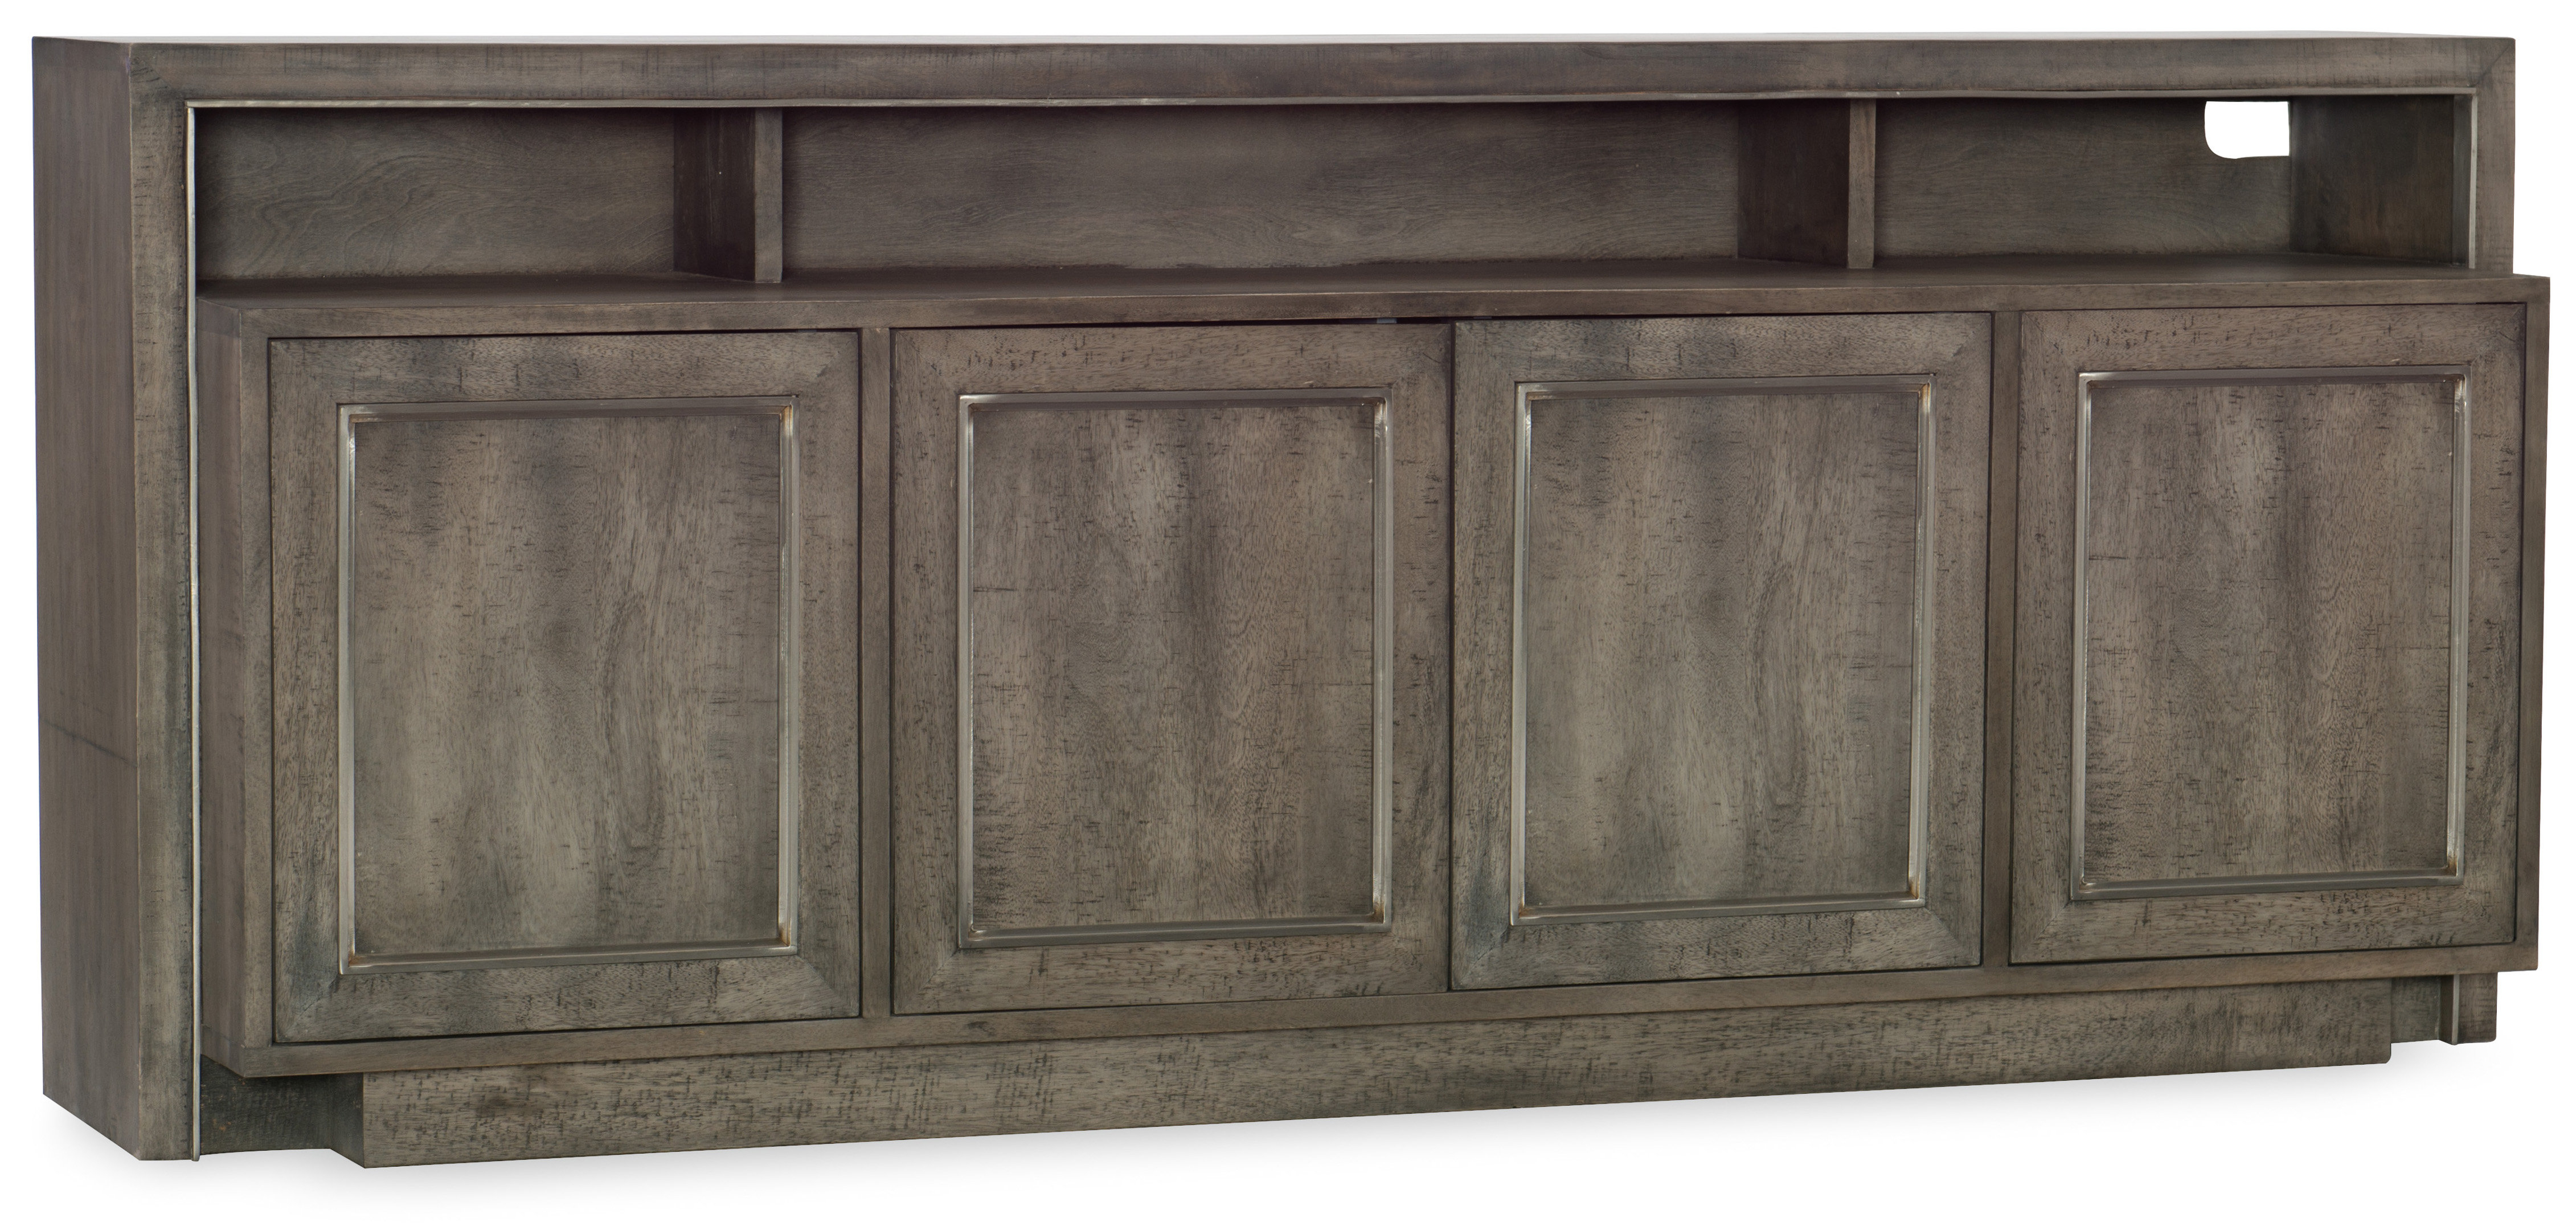 Tv Stands | Joss & Main within Annabelle Blue 70 Inch Tv Stands (Image 28 of 30)